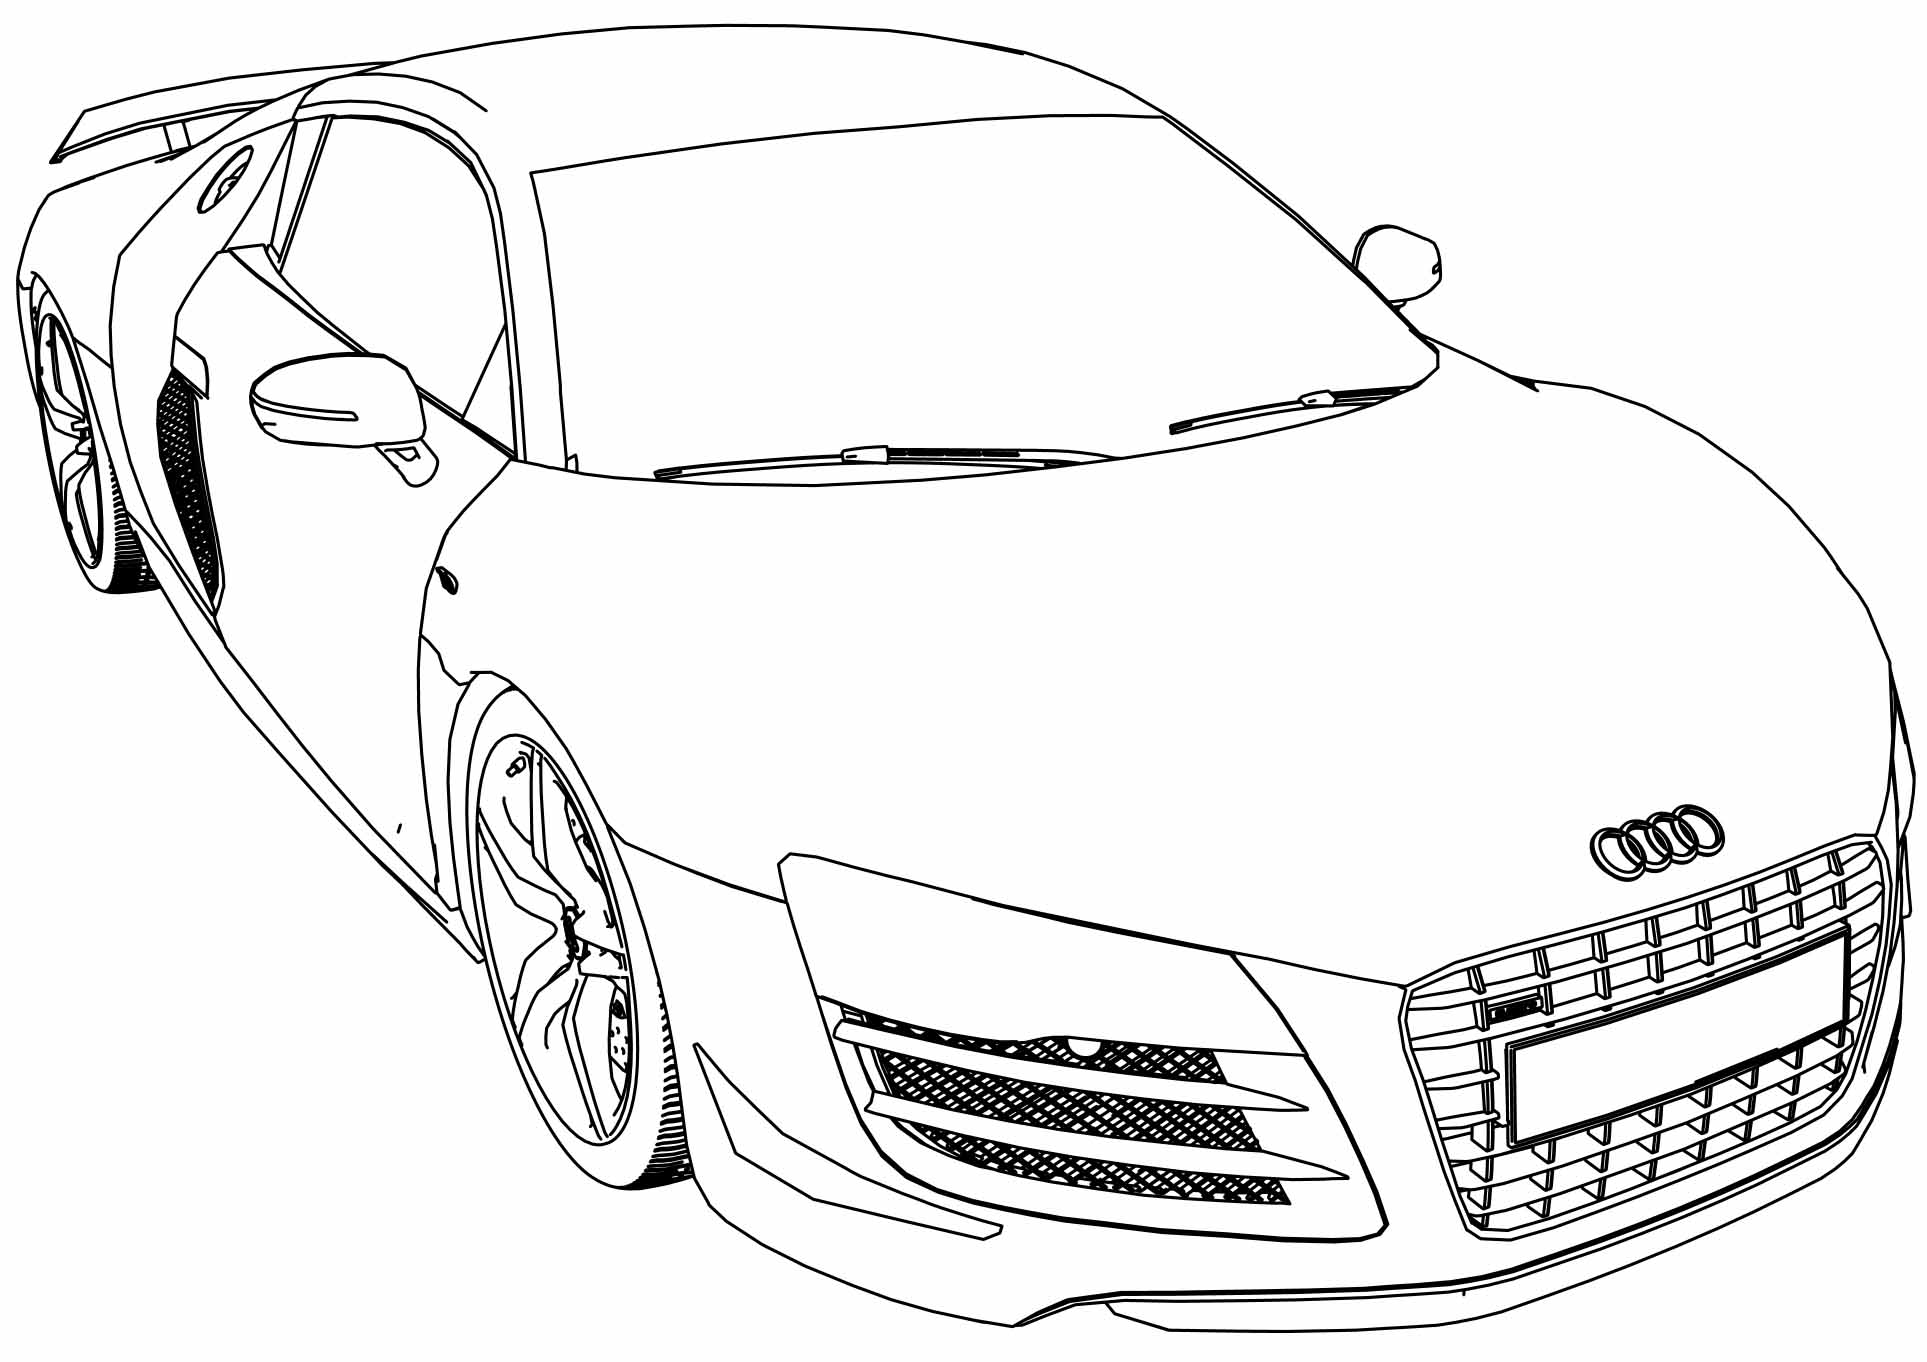 Audi R8 Gt Car Coloring Page